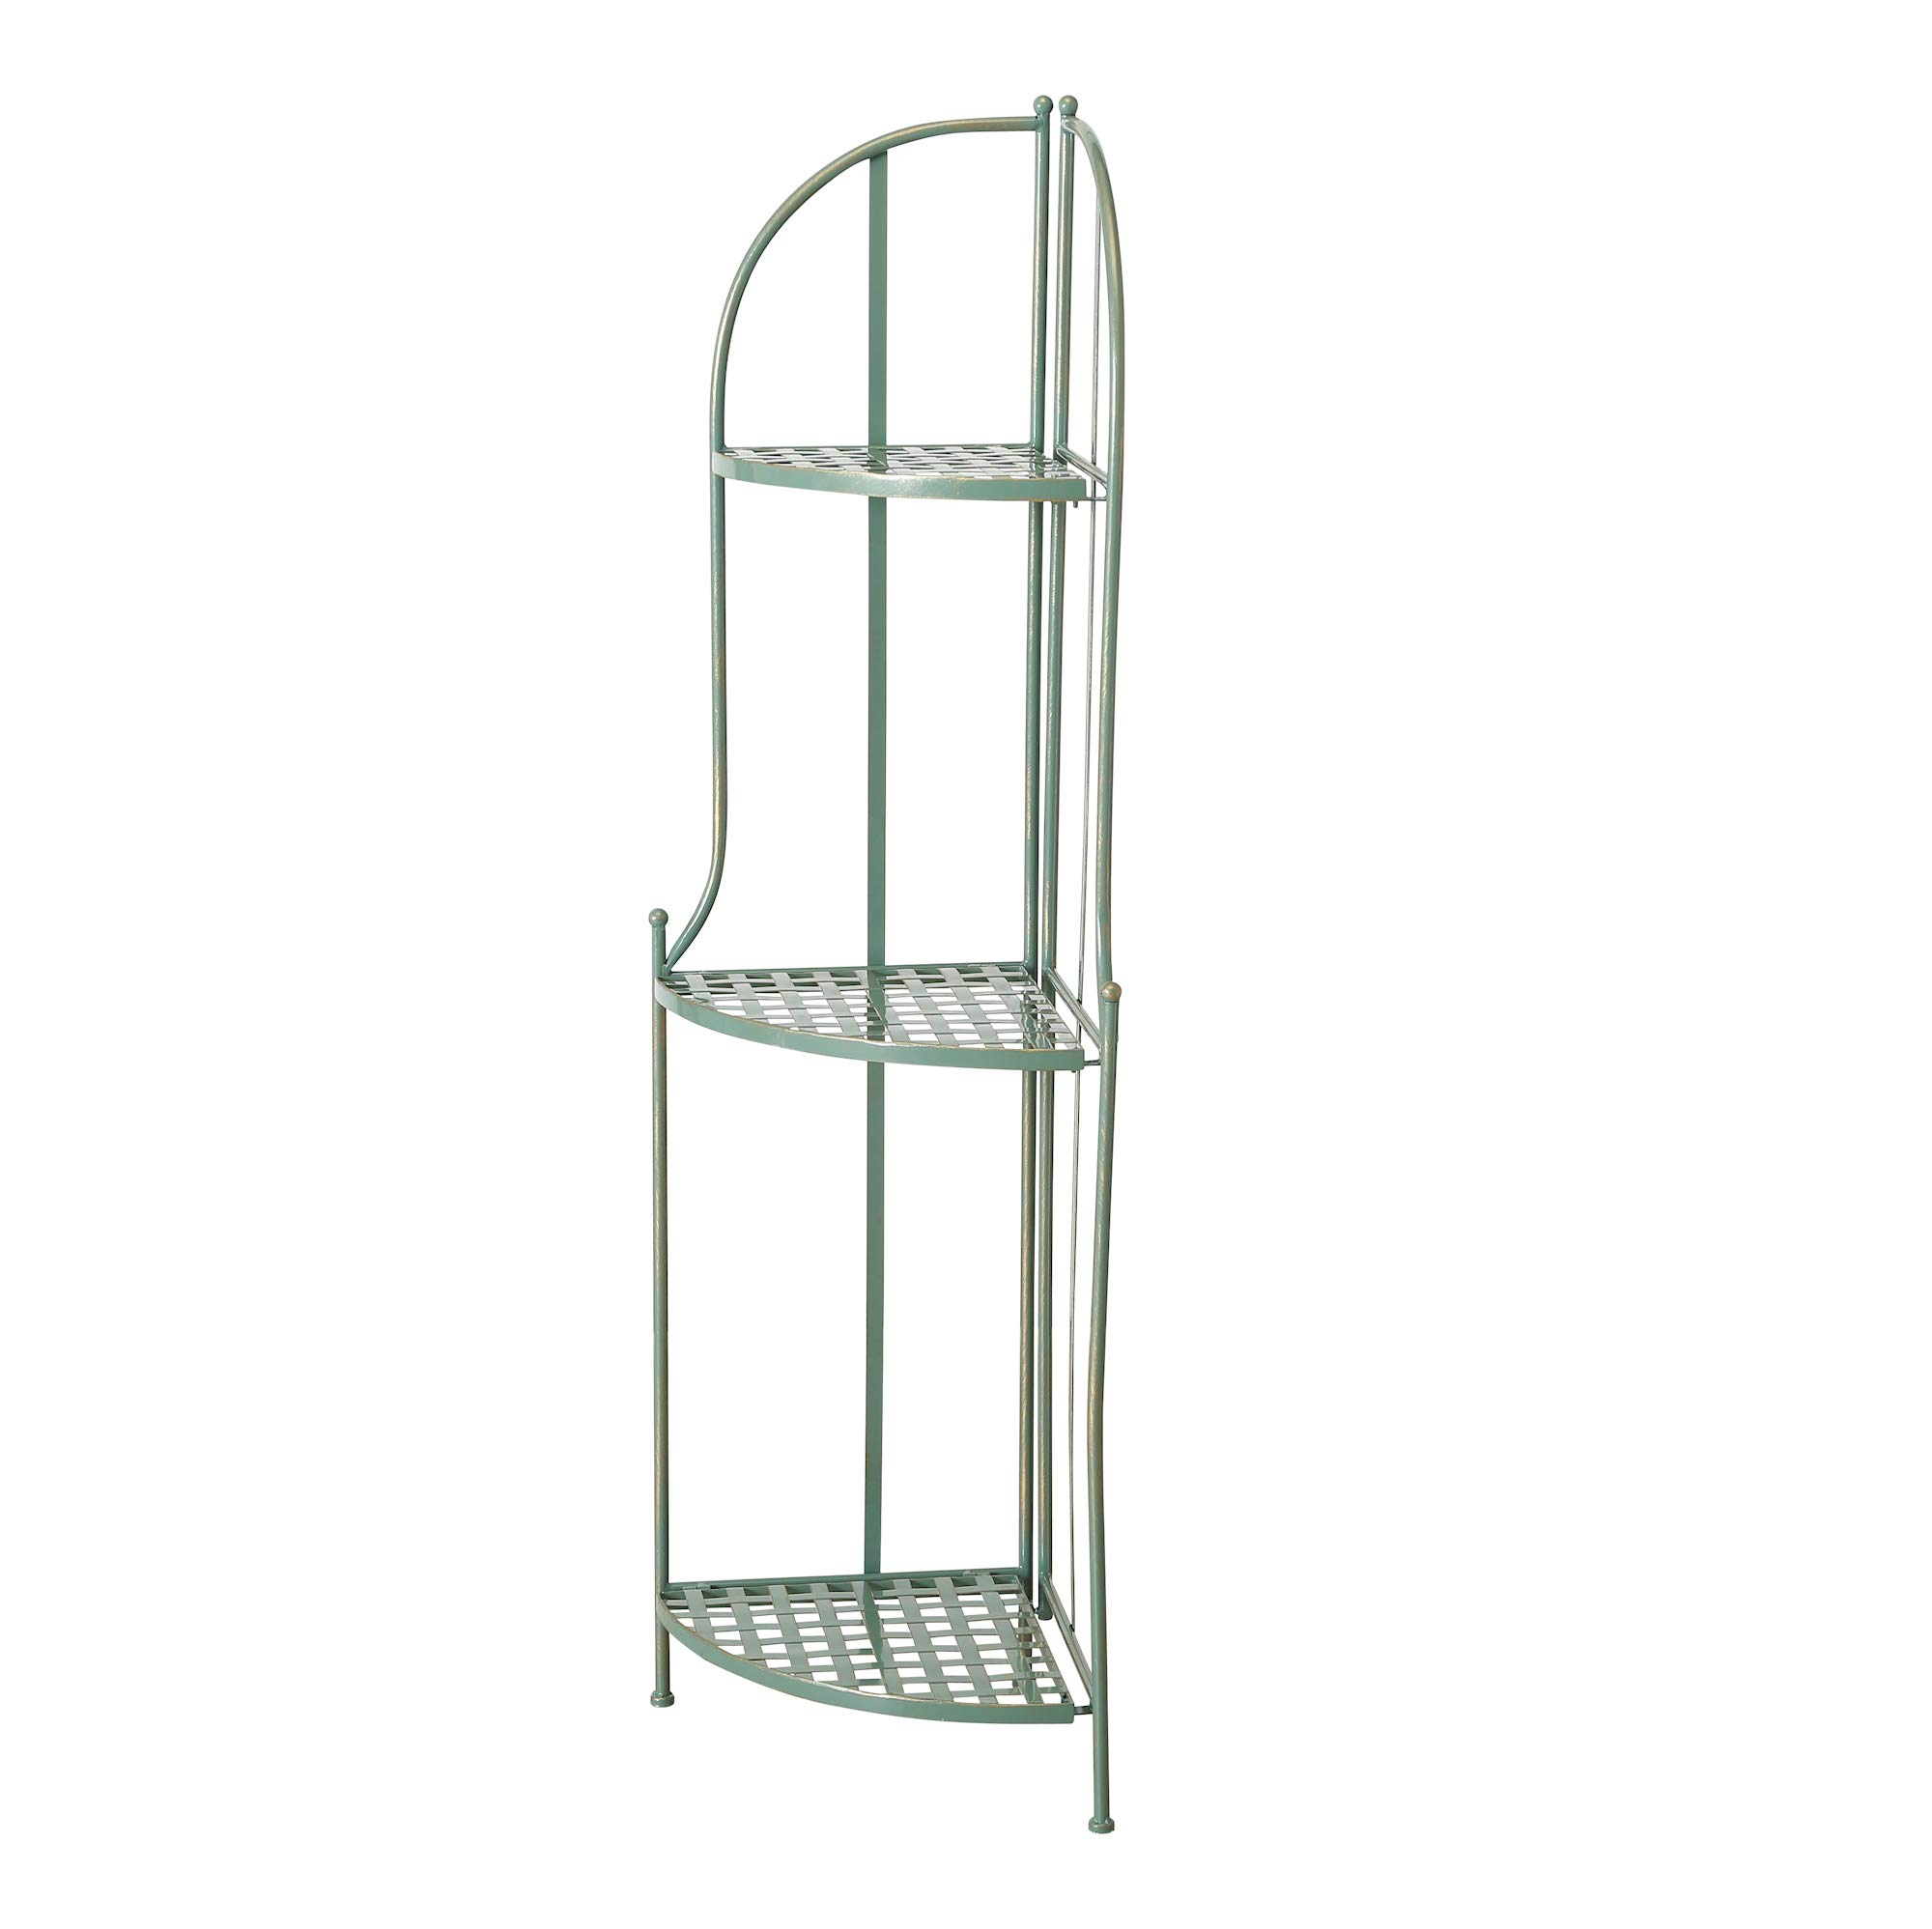 Charlton Street Corner Rack, 3 Shelves, Rustic Green with Terracotta Undertone, Paint Rubbed Distressing, Vintage Style, Iron, Woven Details, Folding, 4 Feet 7 Inches Tall, Indoor or Outdoor Use